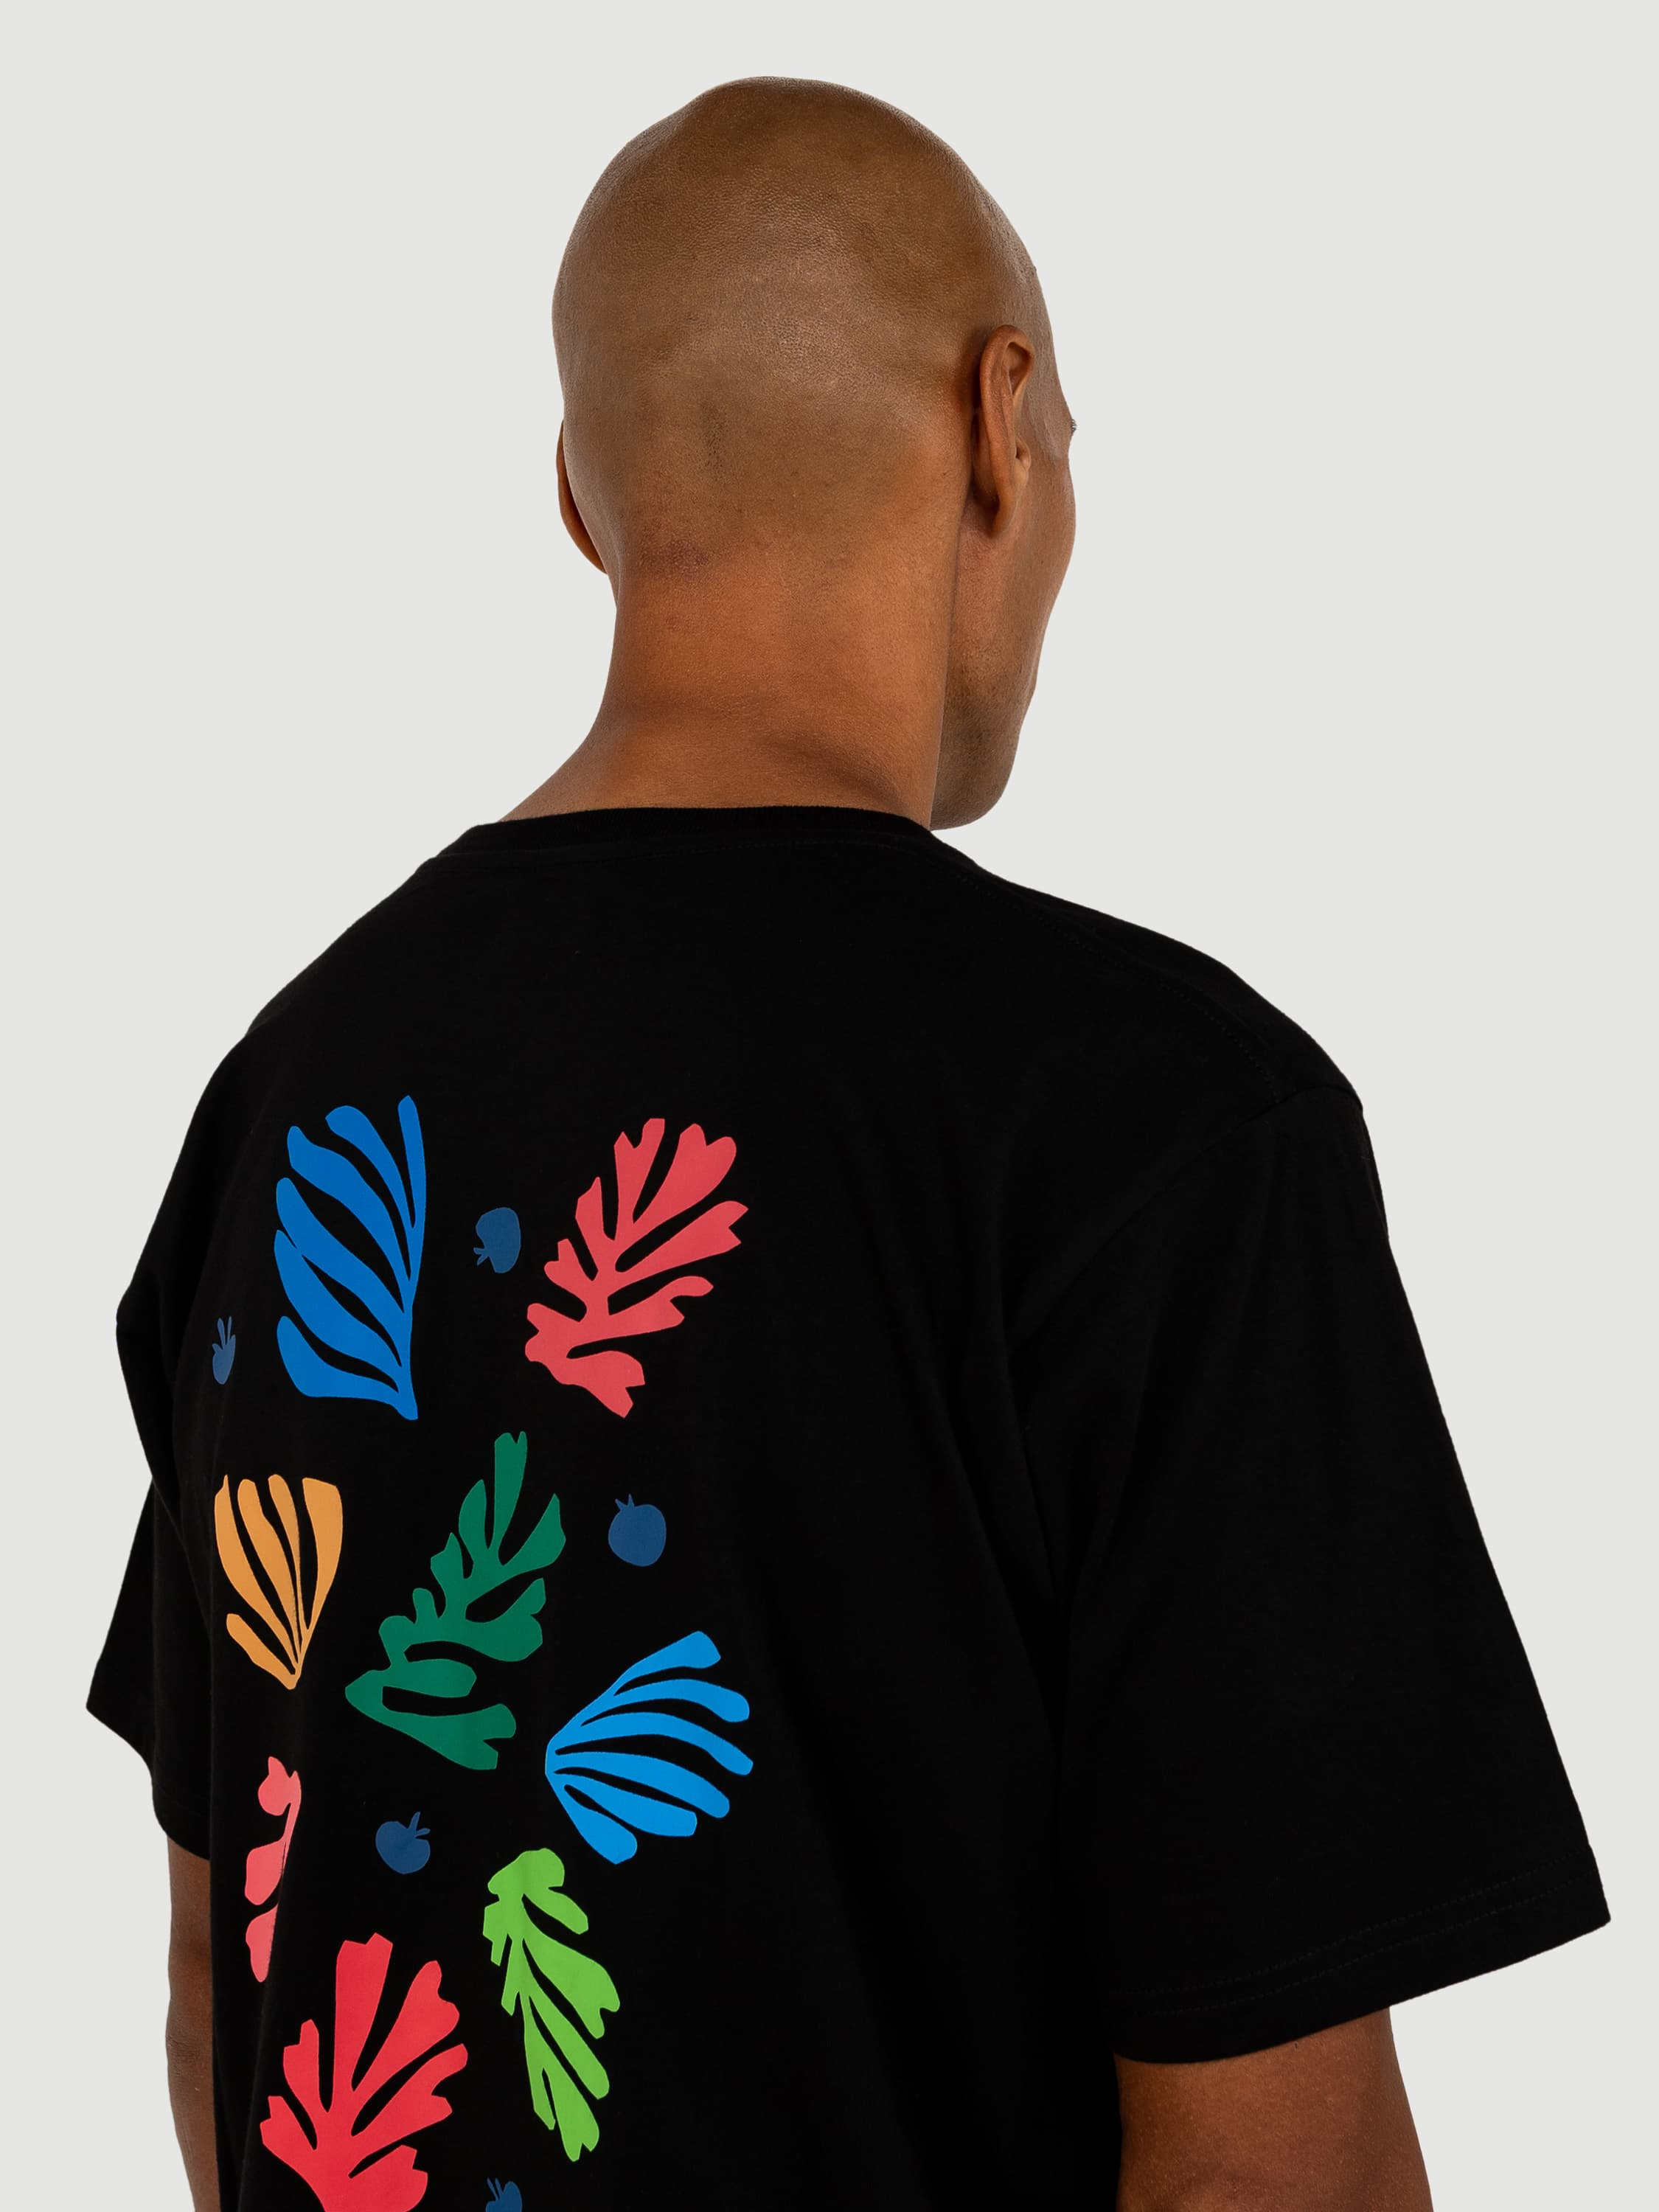 Matisse Flowers Black T-shirt